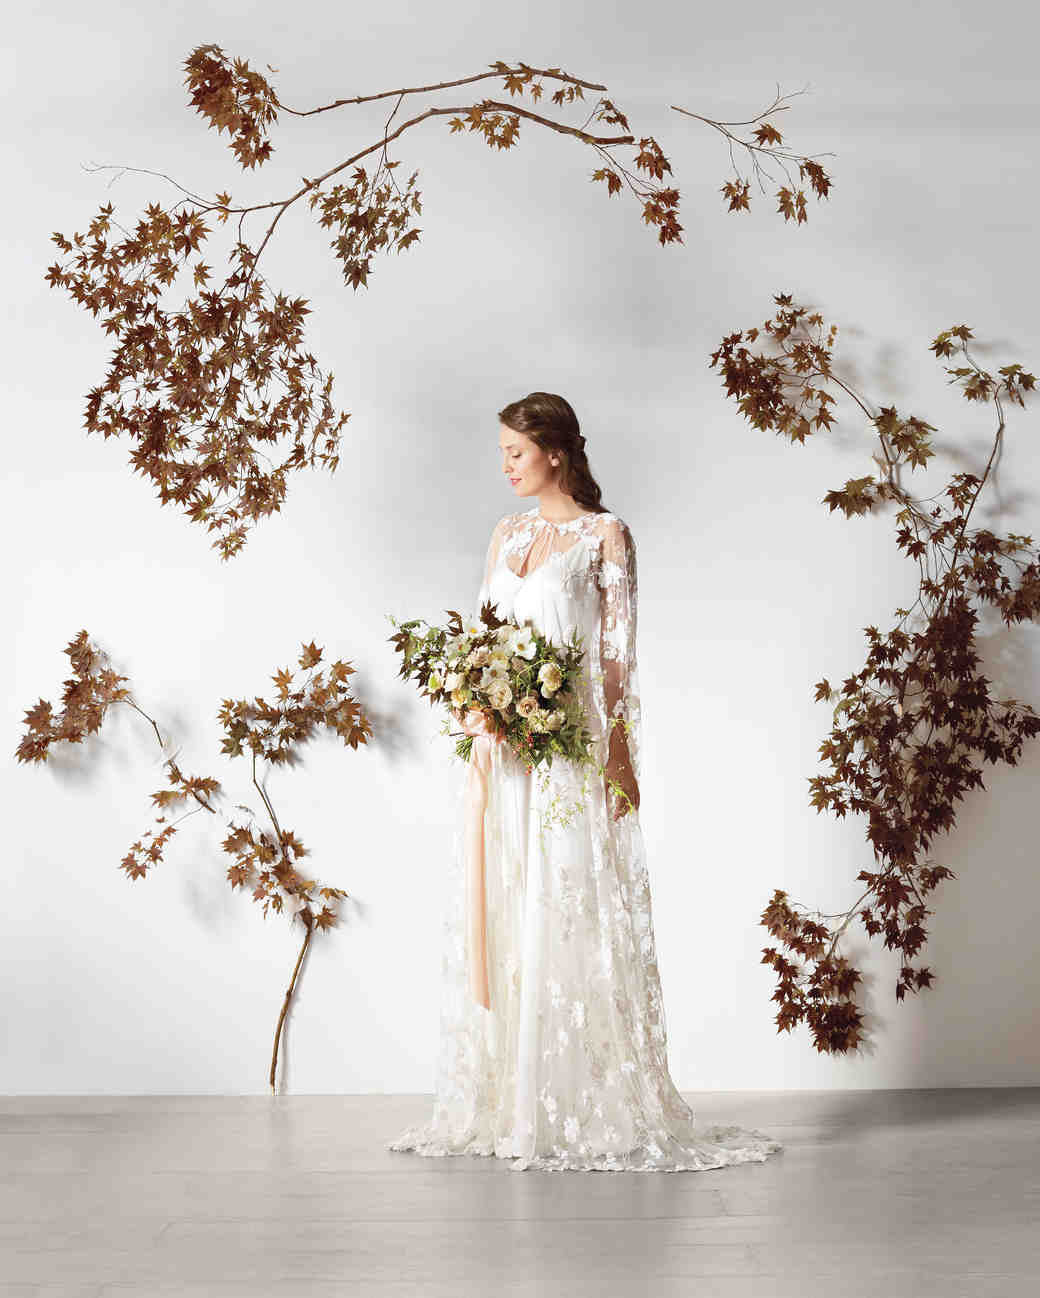 Modern Wedding Backdrop Ideas: 22 Creative Wedding Backdrop Ideas